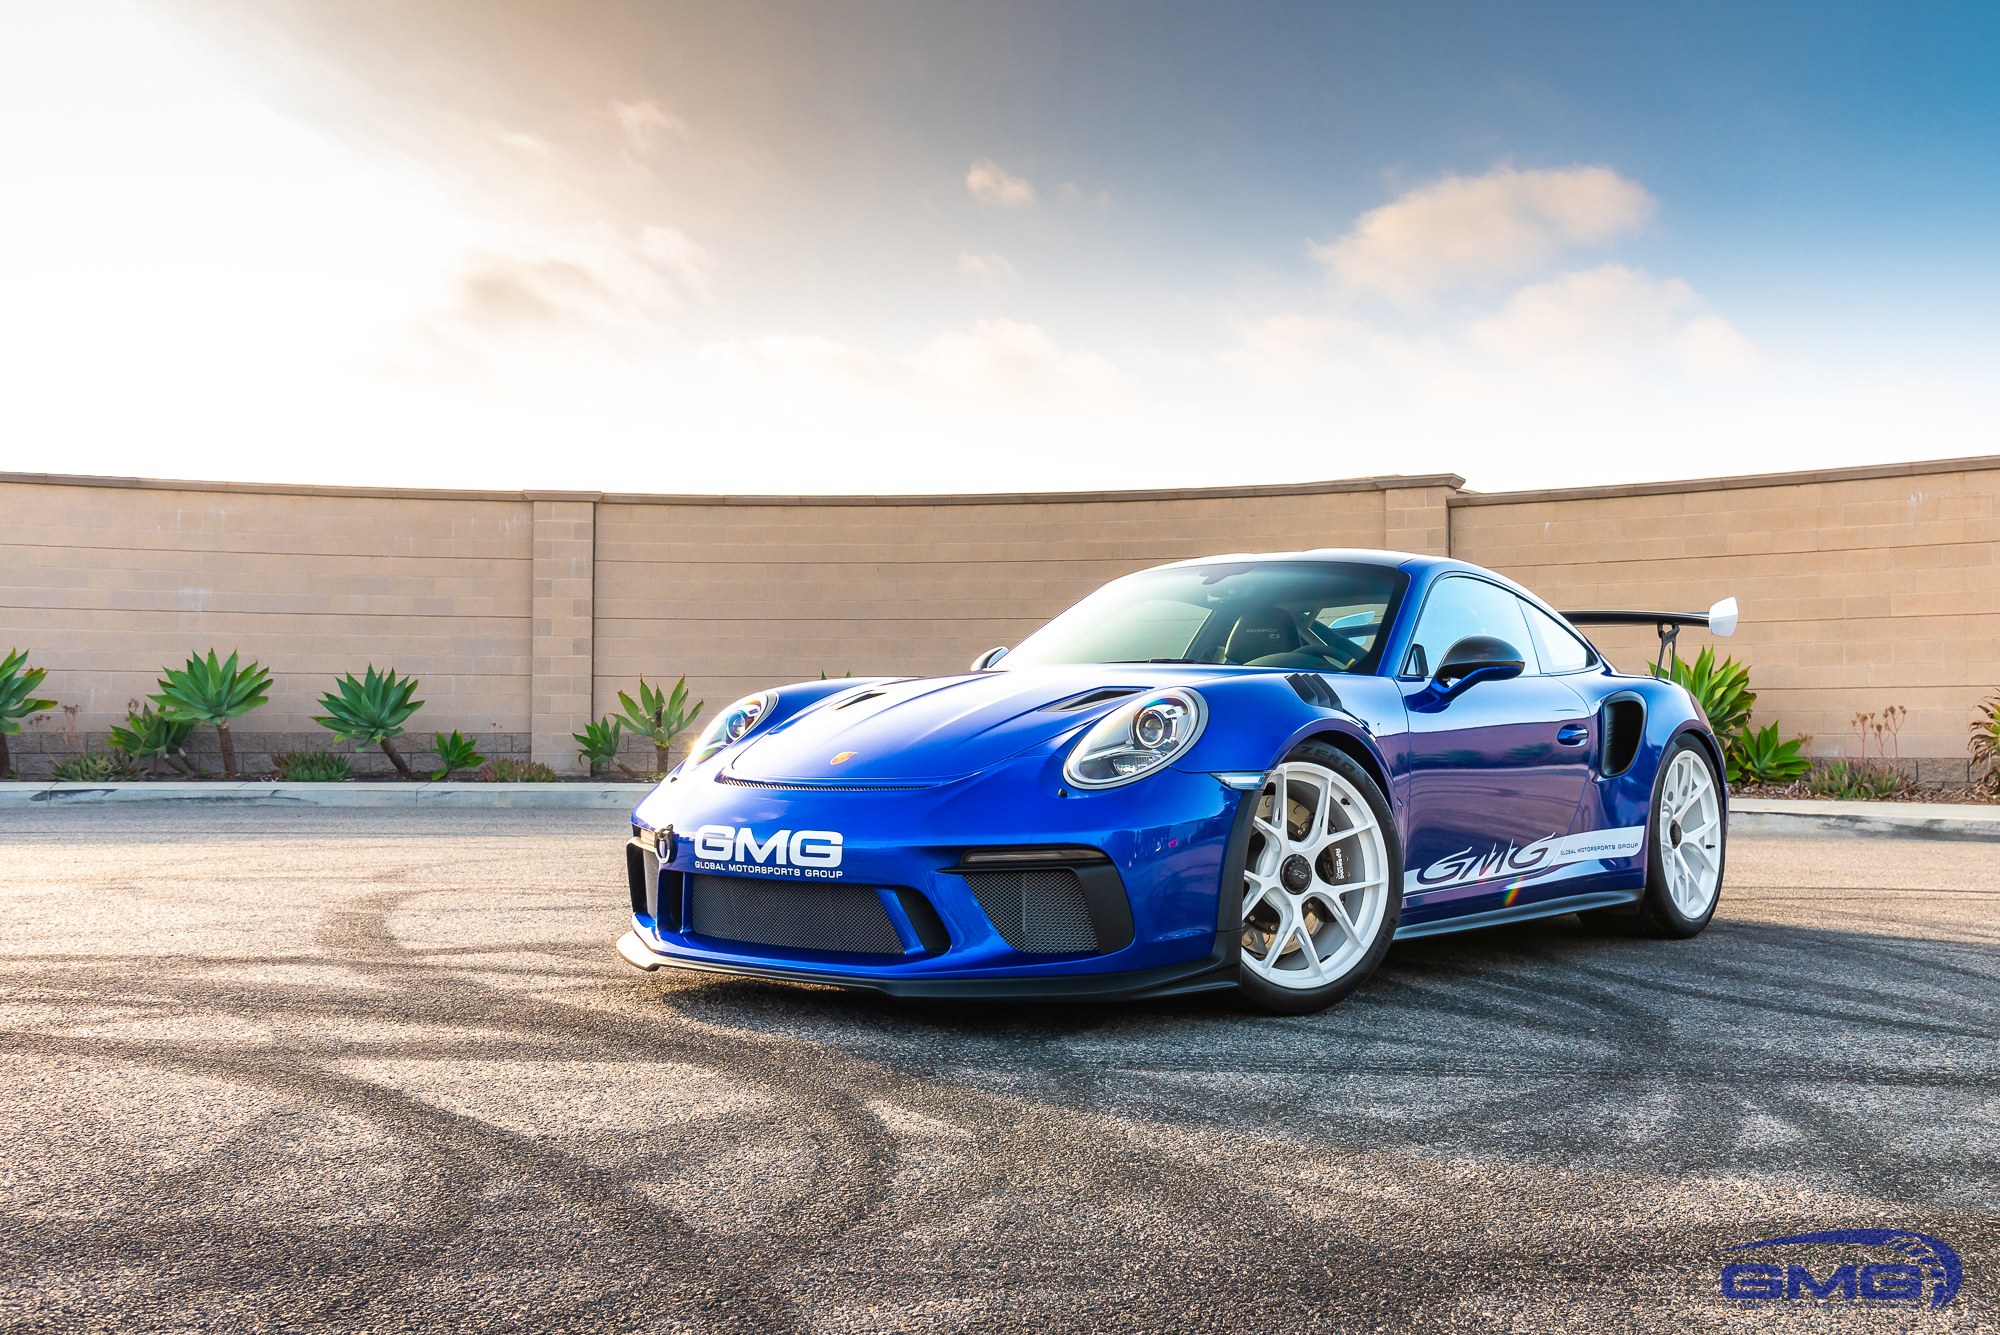 GMG 991.2 GT3RS